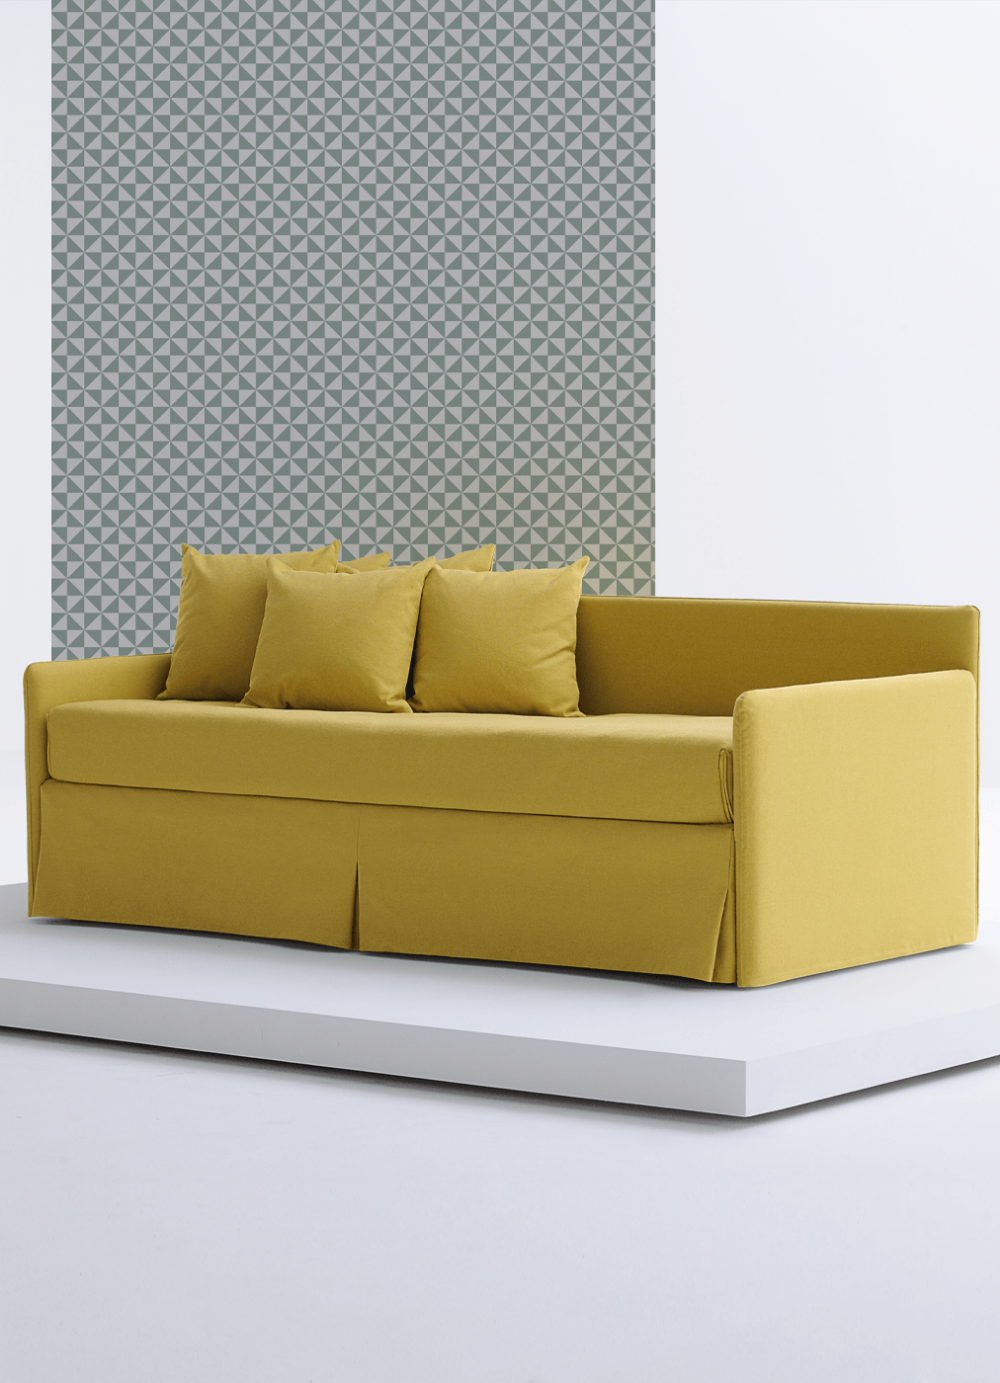 Frauflex Sofa beds solutions for the sleeping area